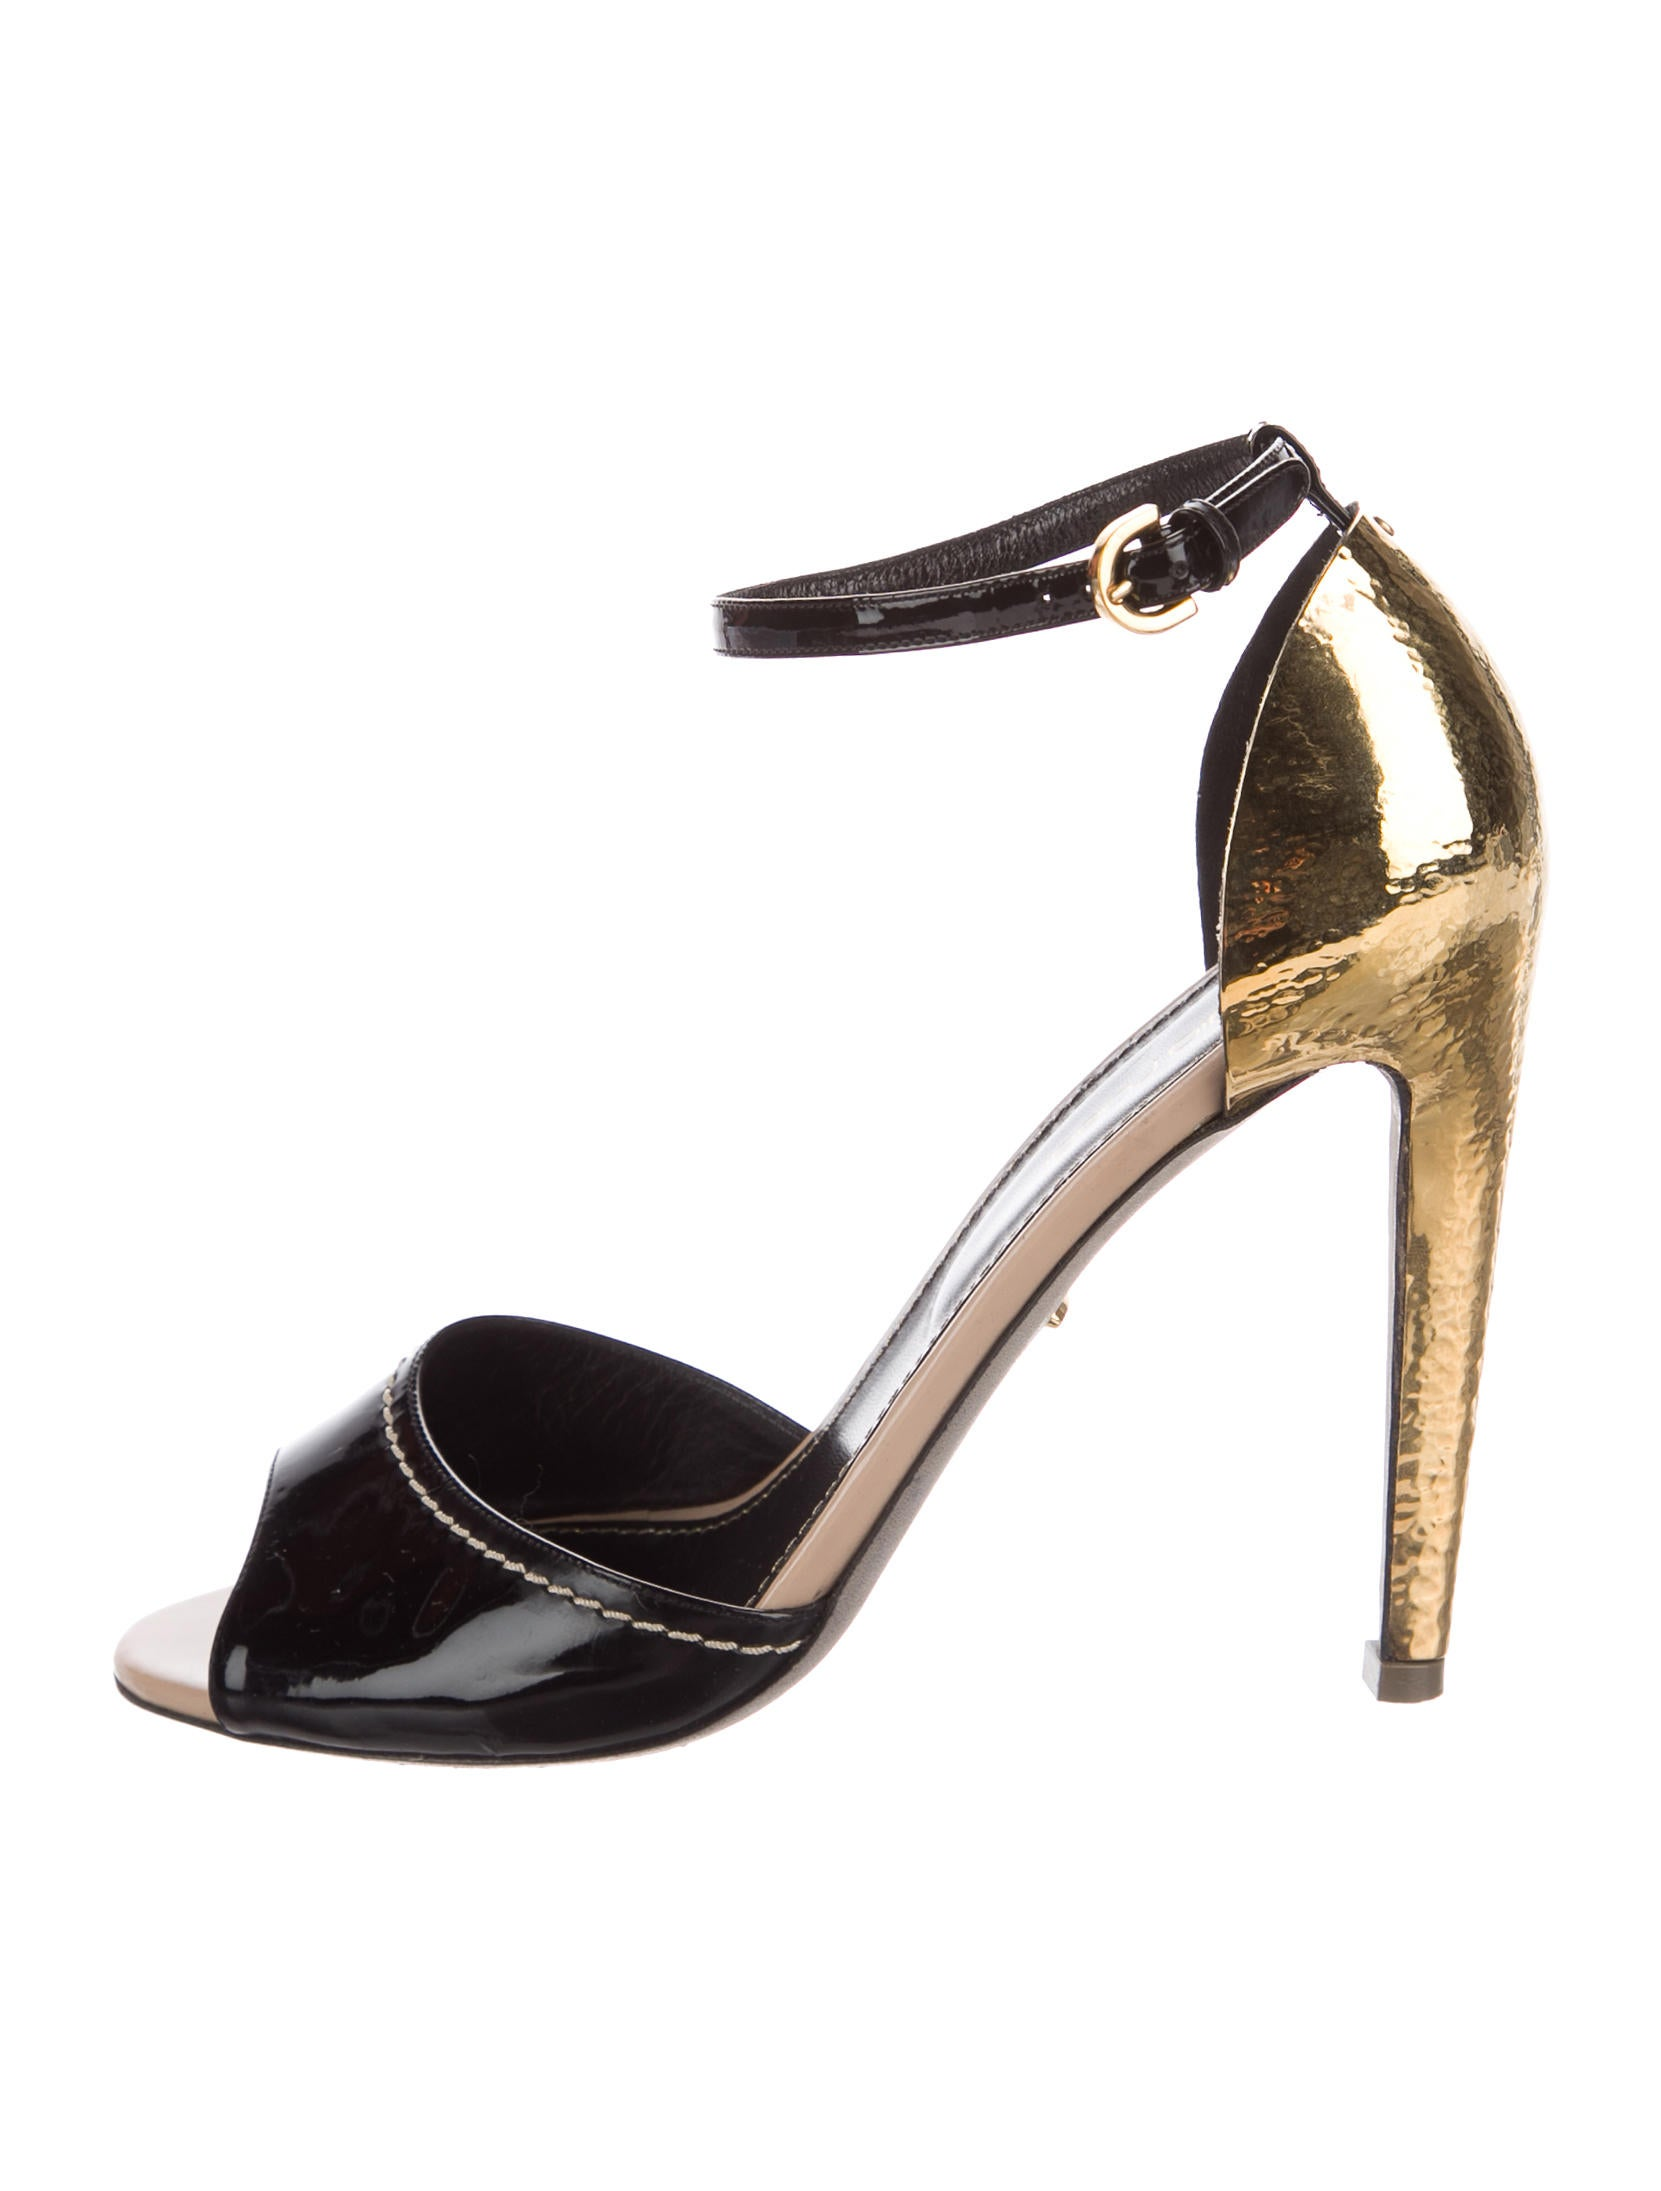 Sergio Rossi Leather Colorblock Sandals low price cheap online clearance comfortable best prices free shipping amazon clearance websites fkM06SM